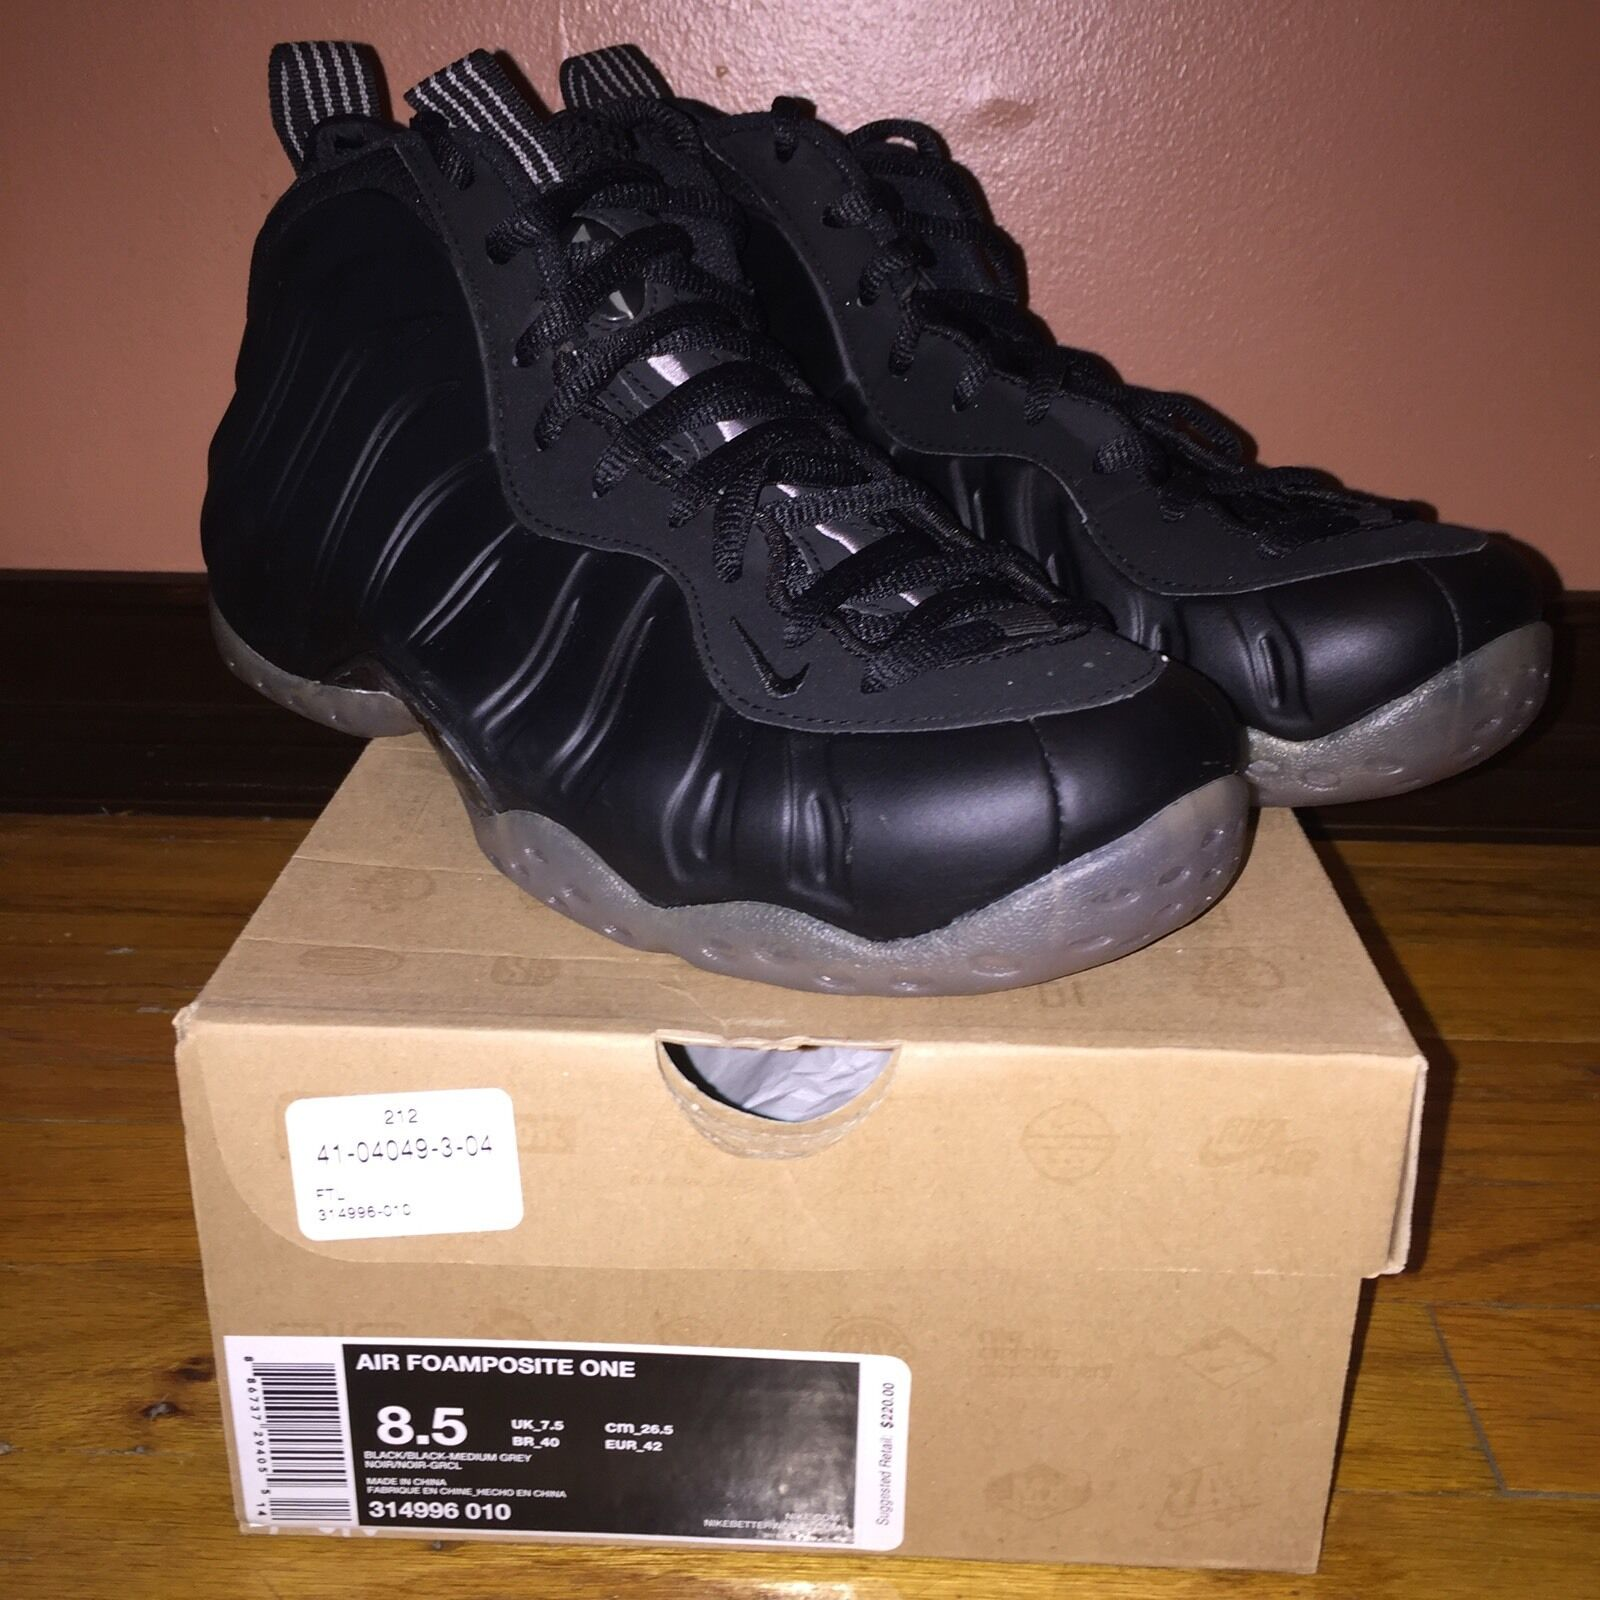 Nike air foamposite uno nero / grigio nero media stealth 314996 010 sz